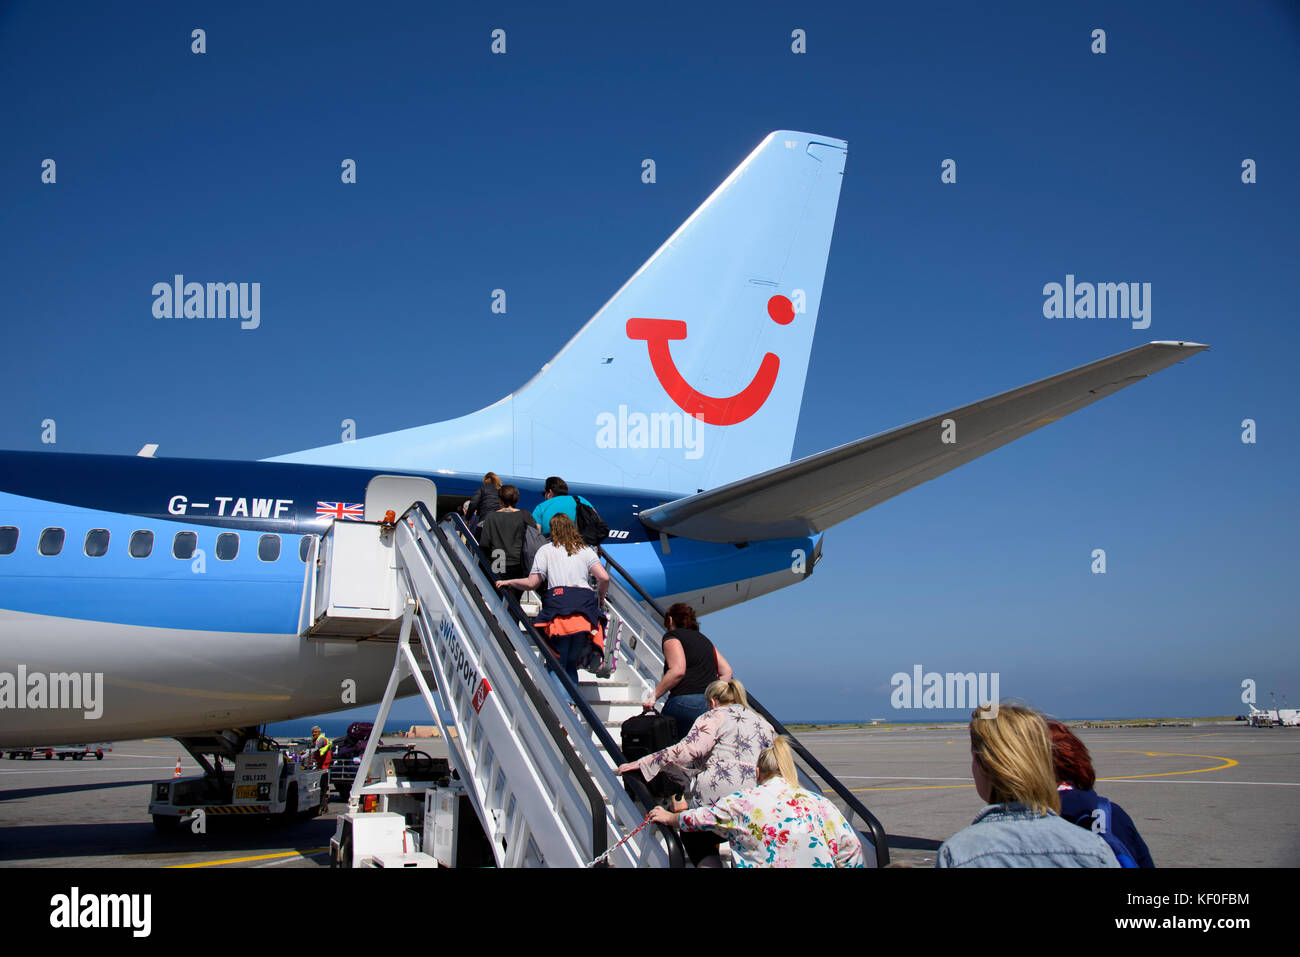 Passengers boarding a Boeing 737-800 airplane at Heraklion Airport, Crete, Greece. - Stock Image